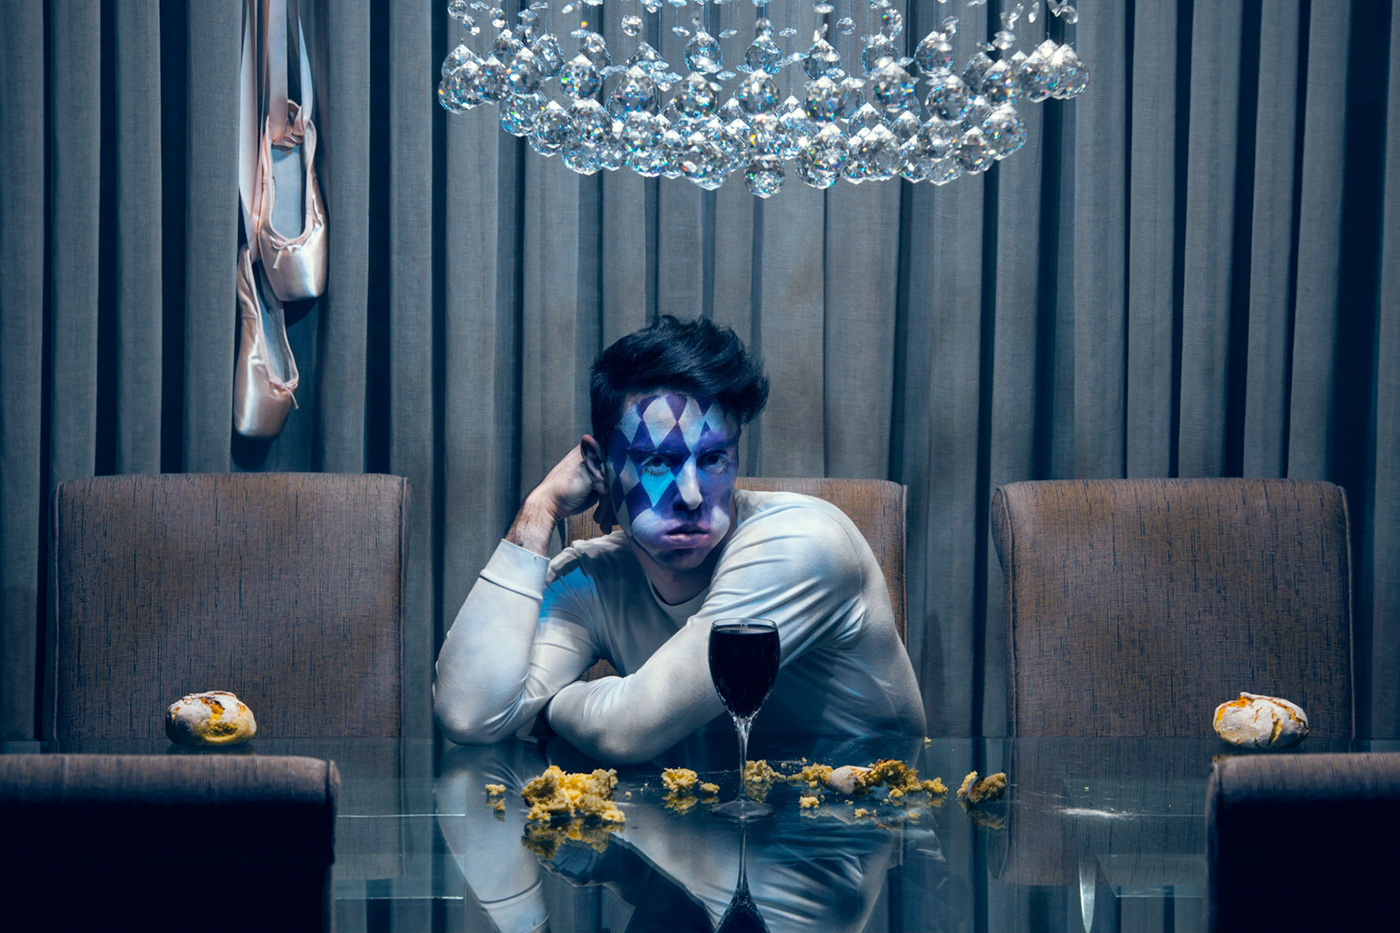 identity Gender LGBT surreal Photography  surrealism gay Posed staged Selfportraits